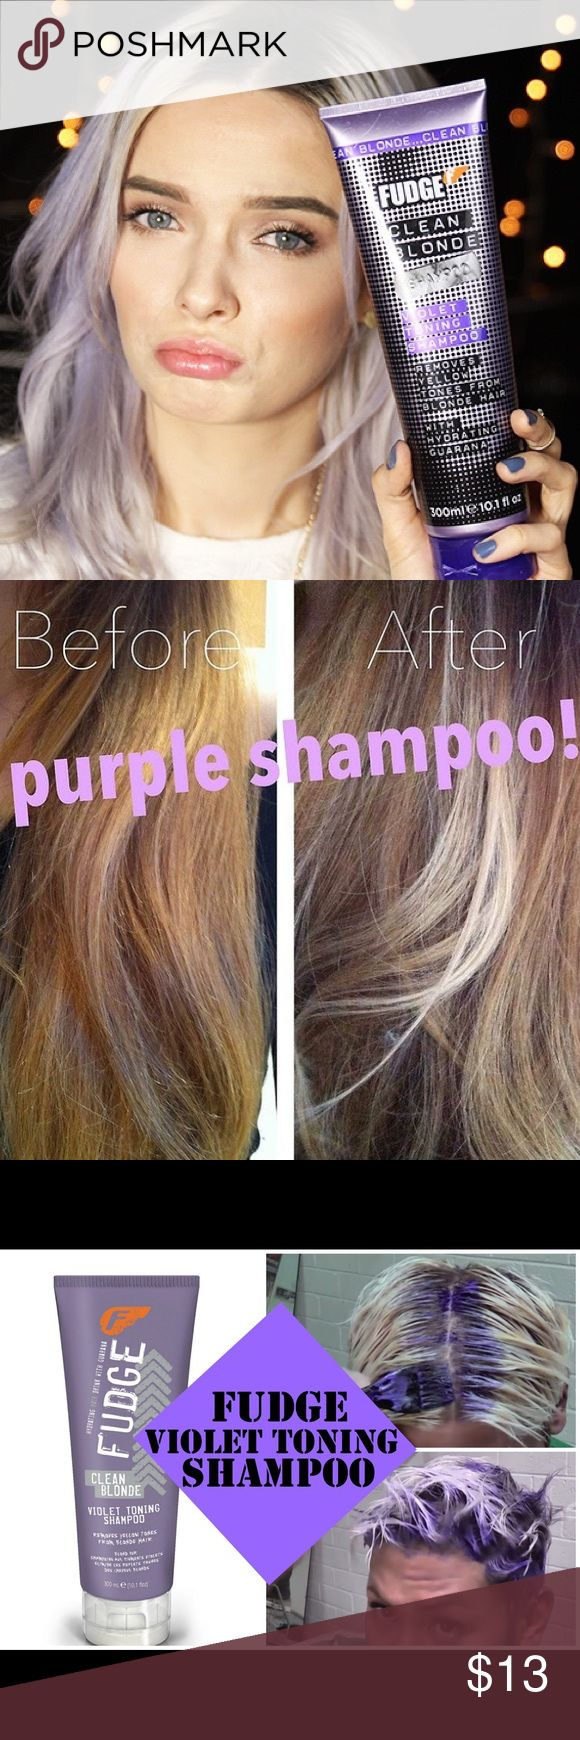 AUS Only Purple Blonde Toning Shampoo FUDGE 5 Star Blogger loved and always gets 5 stars, FUDGE violet toning shampoo for blondes. Imported from Australia. Brand new bottle. Tones away brass on ombré and platinum blondes. Best product out there, dye free. Check the reviews out online. MAC Cosmetics Makeup Brushes & Tools